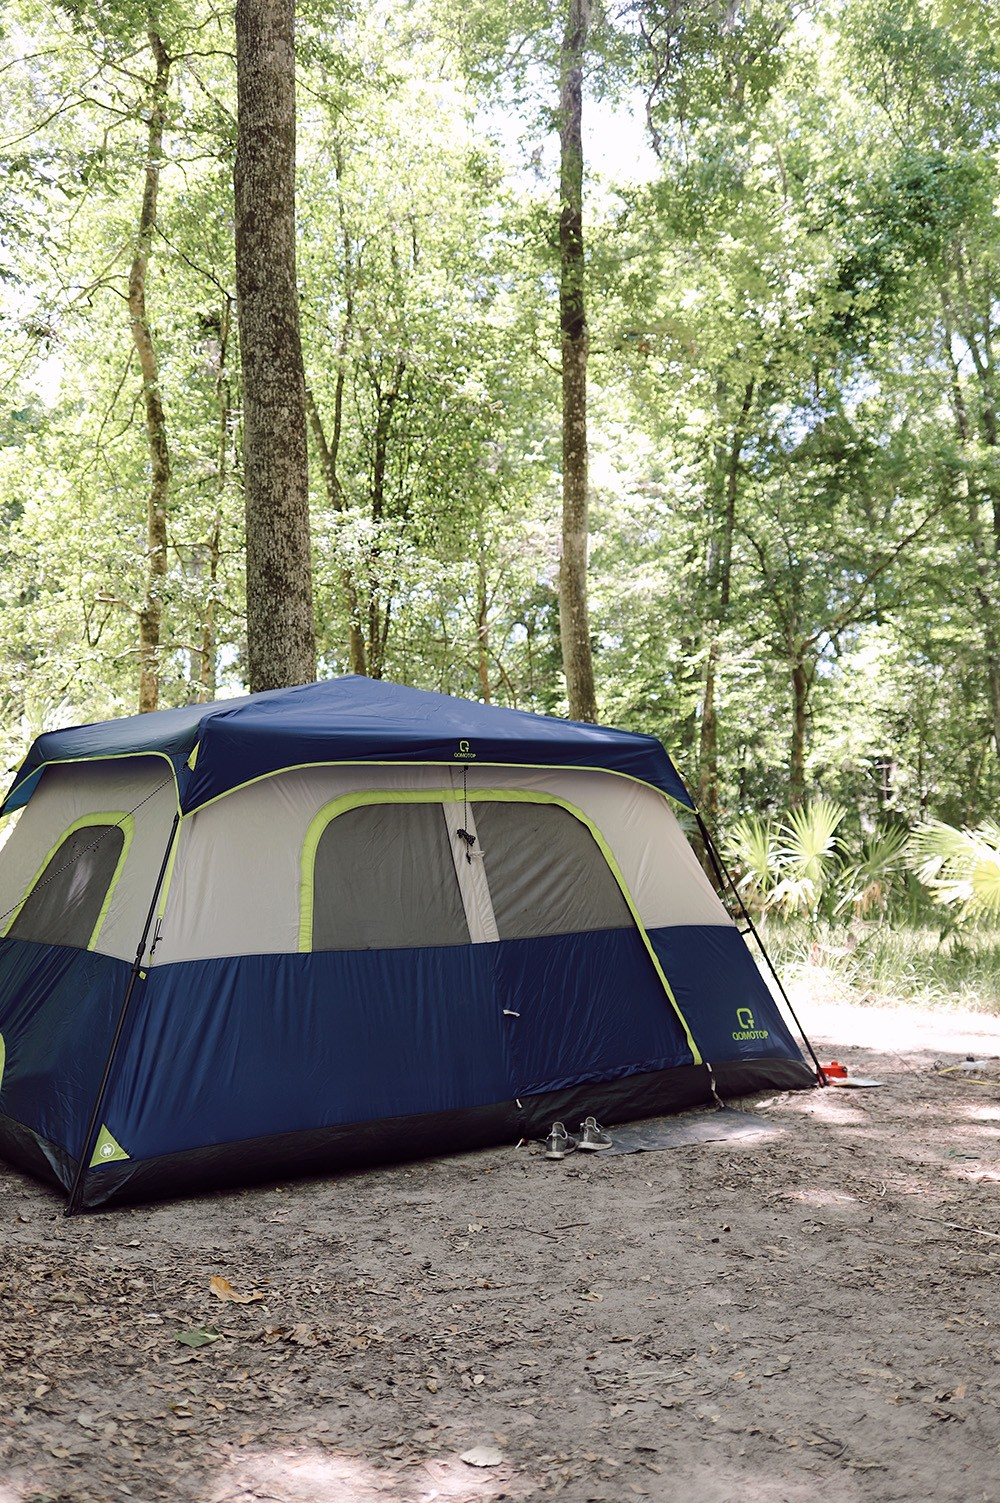 11 Camping Must Haves and Don't Bothers You Need to Know Before You Go. Family Camping   Camping Must Haves by popular Florida lifestyle blog, Fresh Mommy Blog: image of a blue and grey tent.